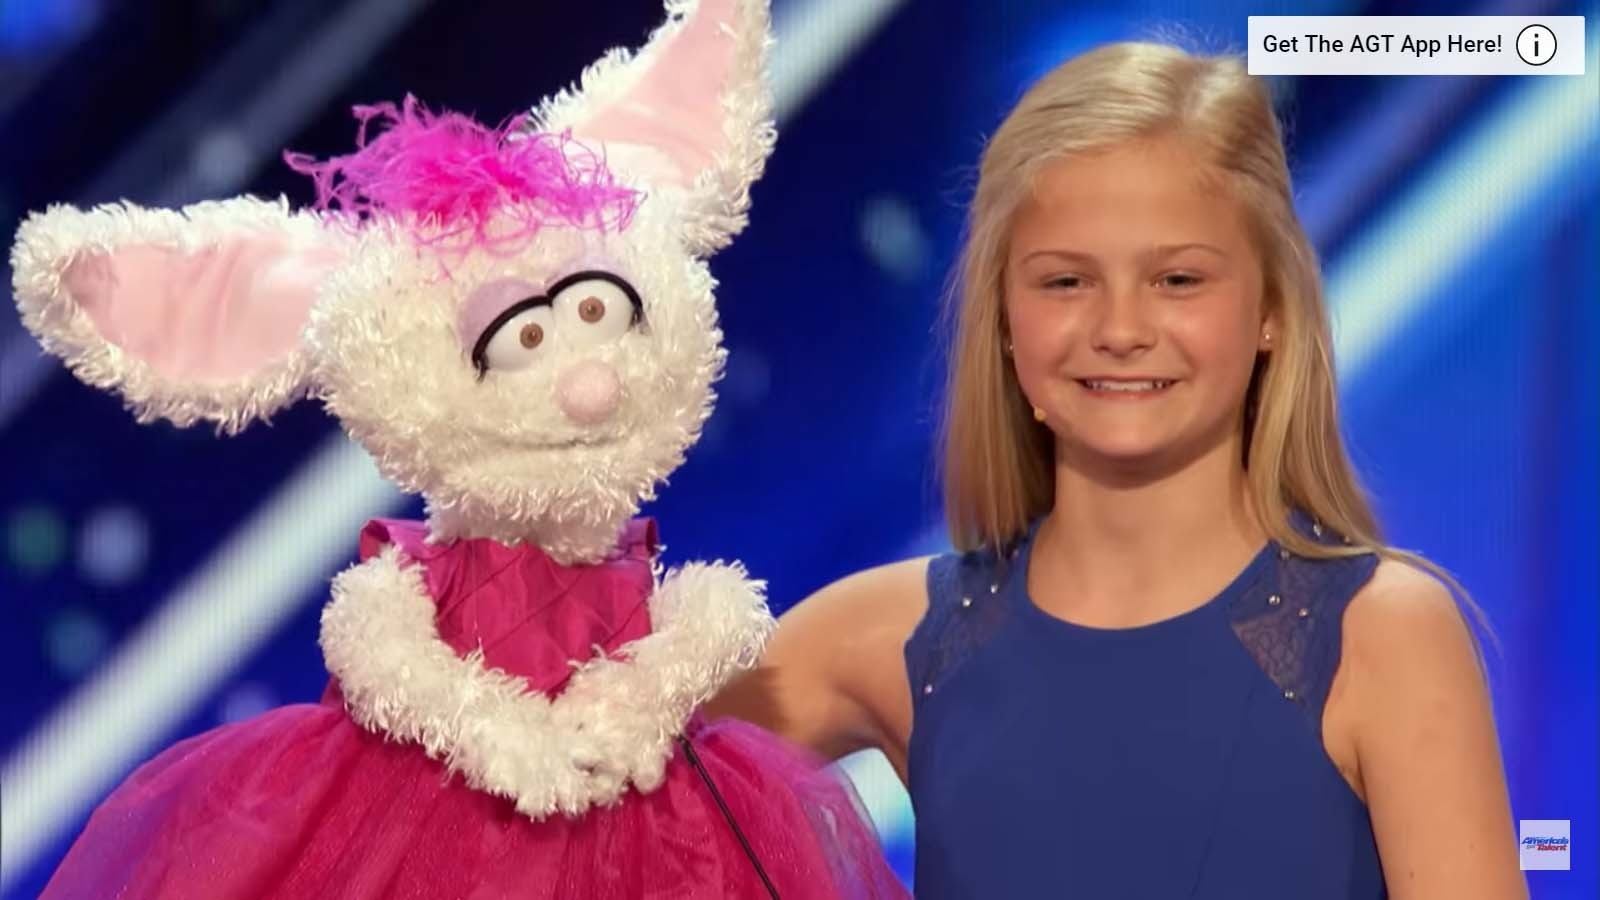 Americas got talent 2017 impersonations - Singing Tween Ventriloquist From America S Got Talent Is The Cure For What Ails You La Times